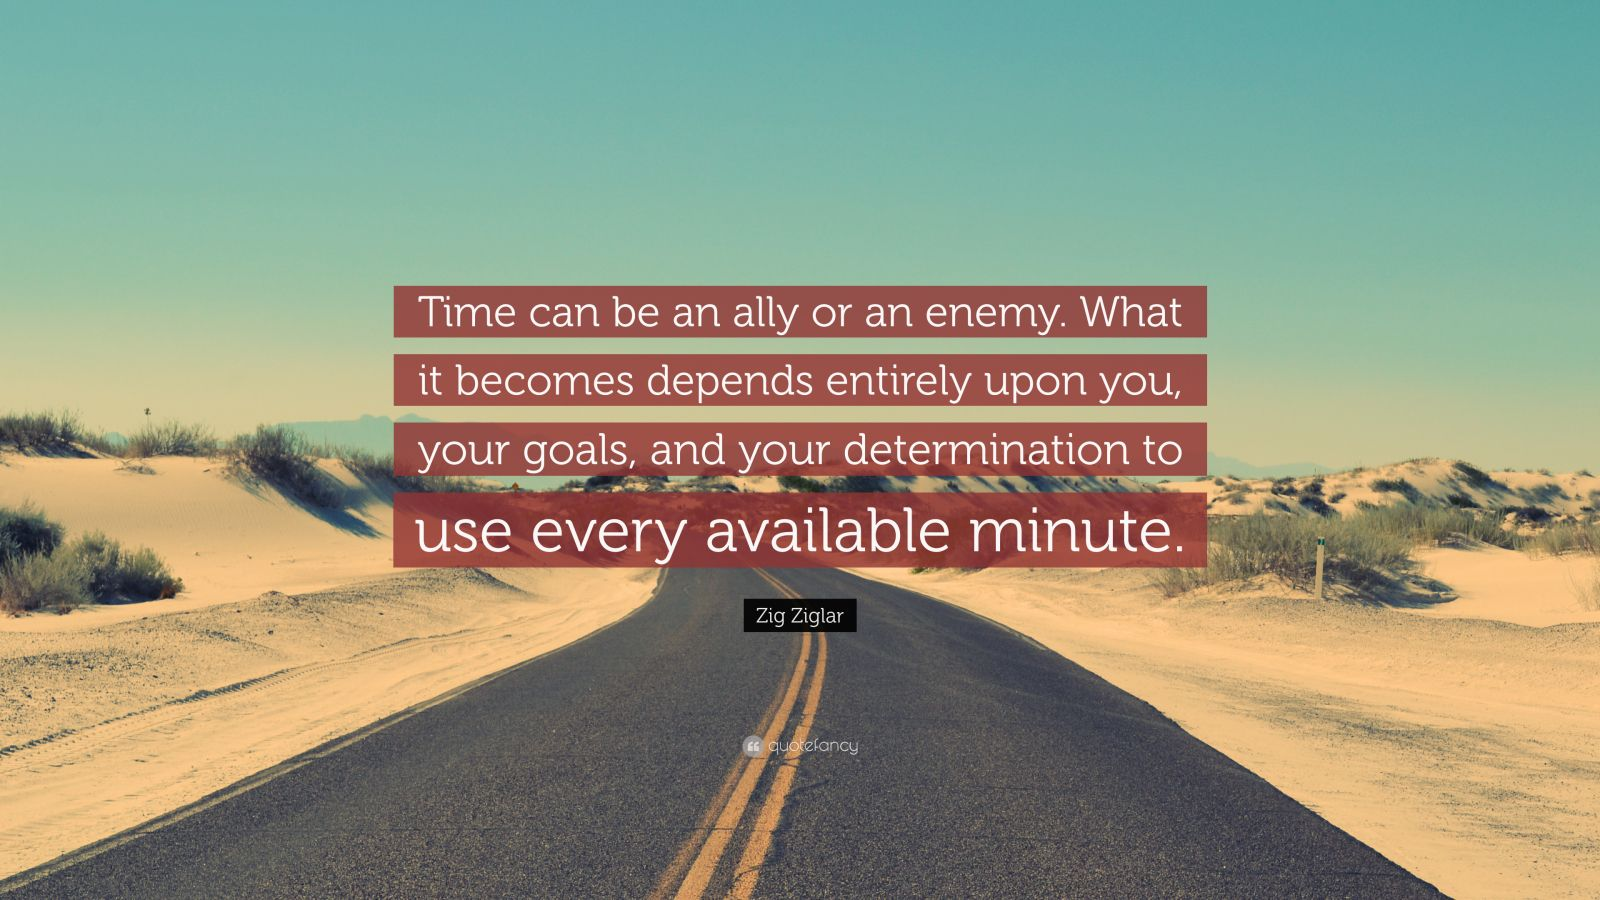 """Zig Ziglar Quote: """"Time can be an ally or an enemy. What it becomes depends entirely upon you, your goals, and your determination to use every available minute."""""""